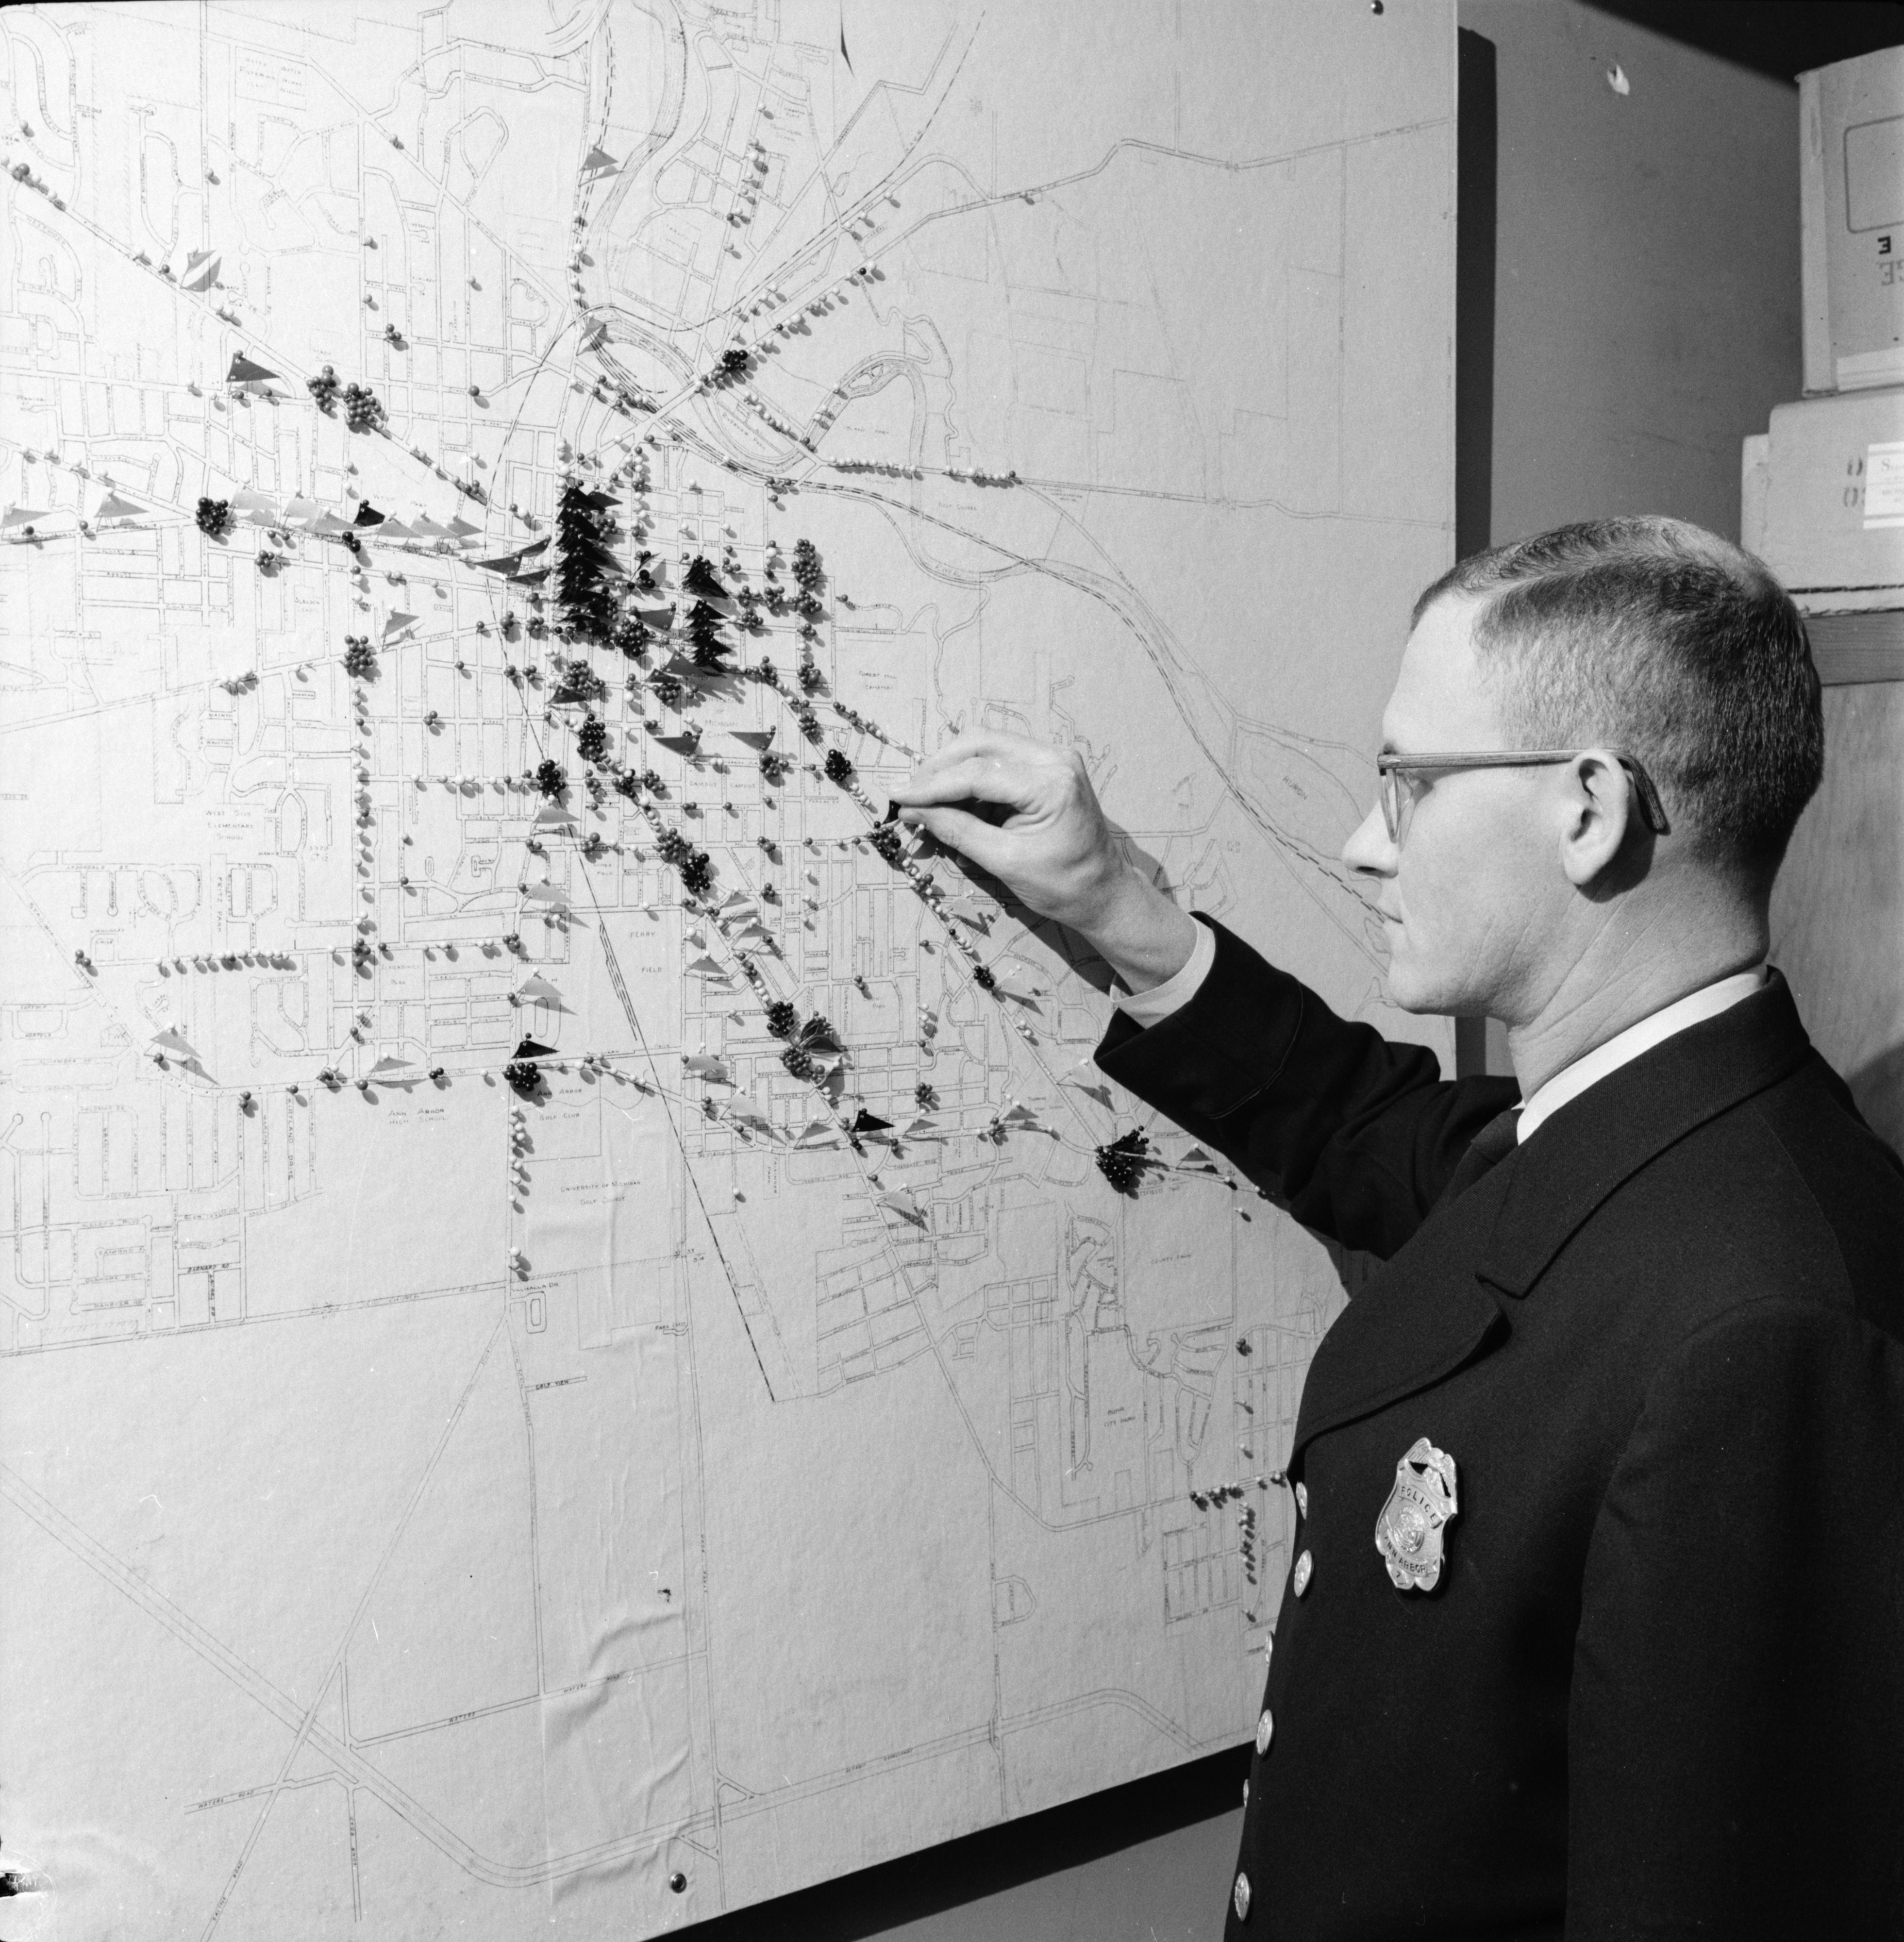 Patrolman Howard R. Zeck and Ann Arbor Police Department Traffic Bureau Chart, January 1959 image